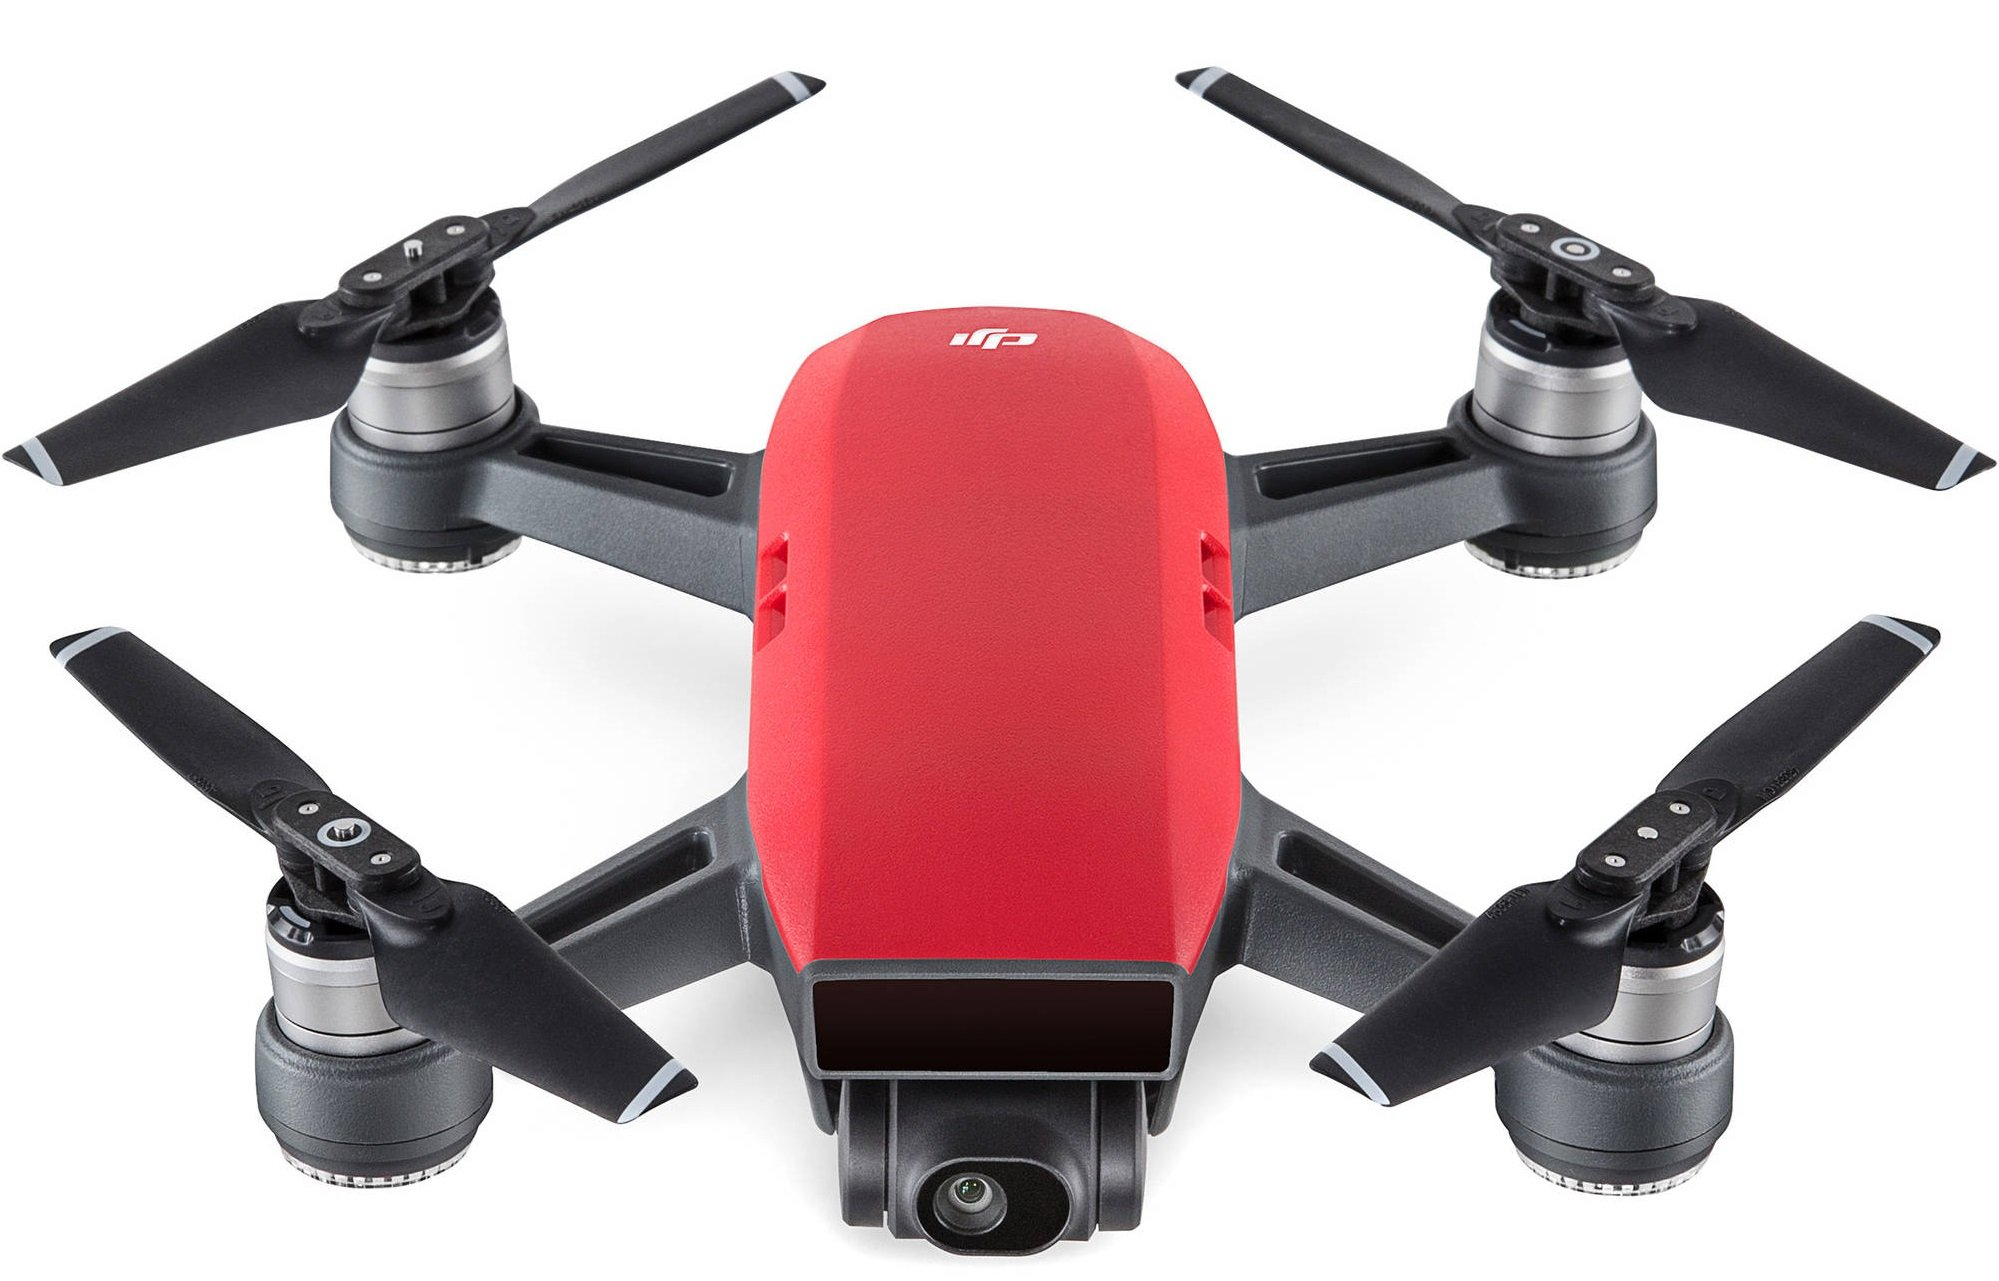 DJI Spark Lava Red version